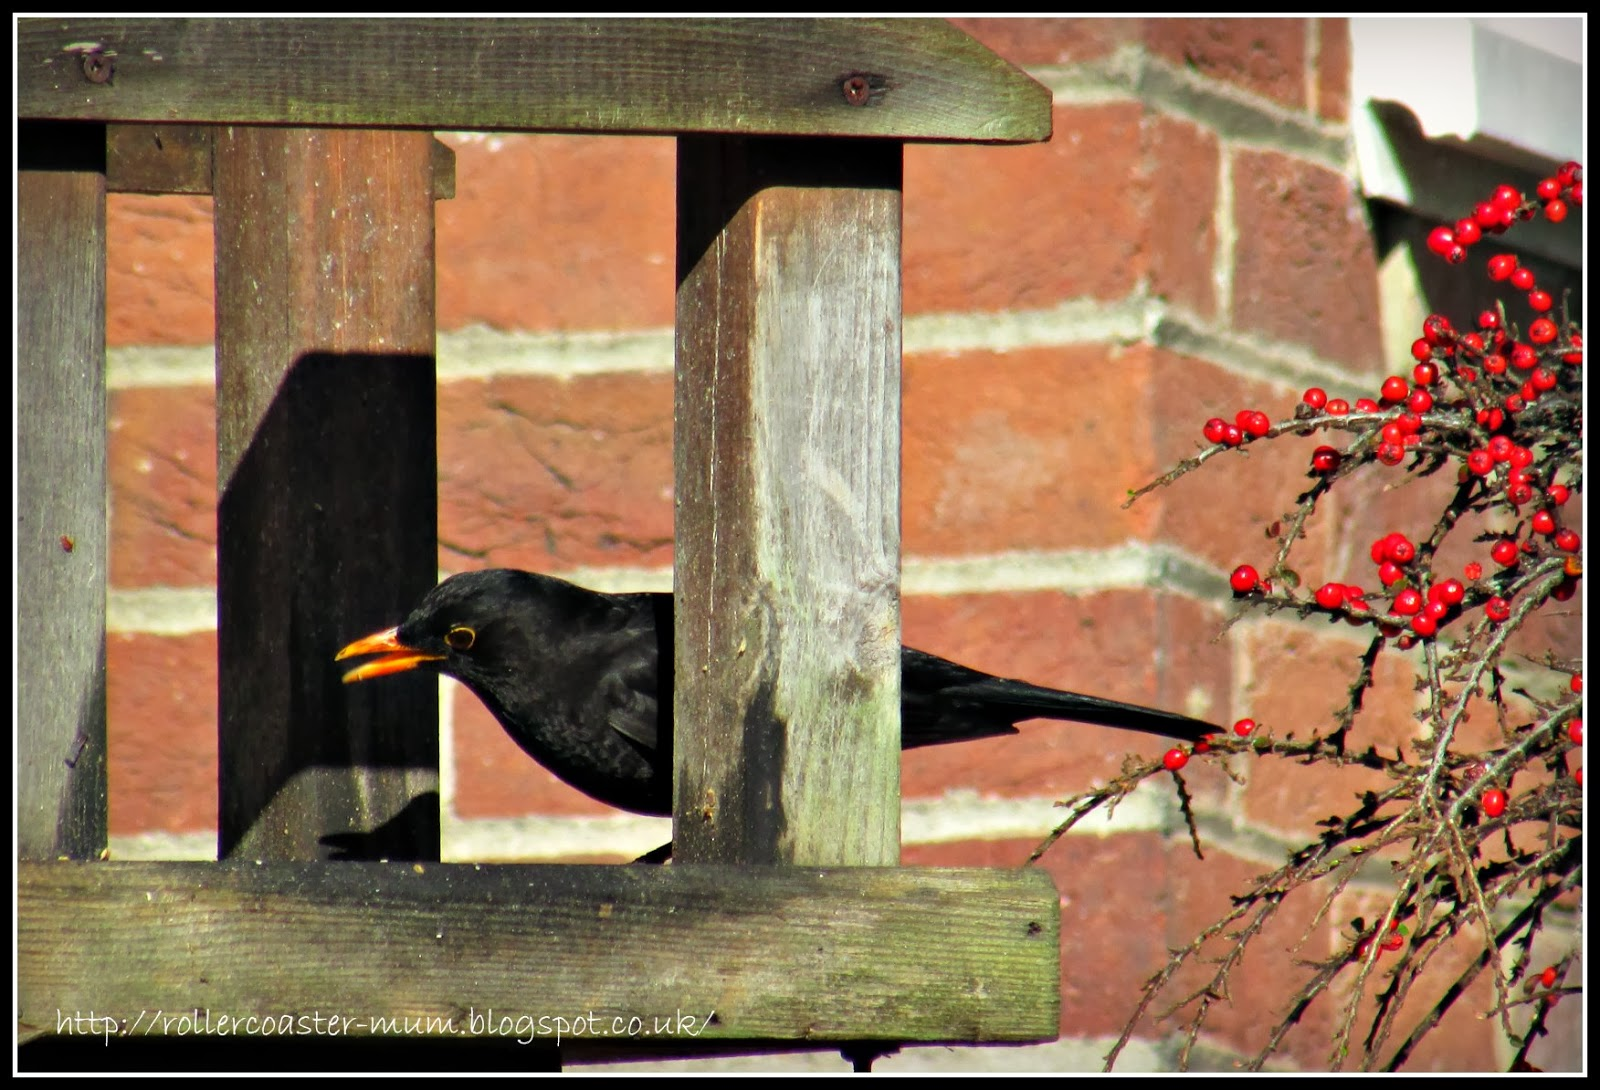 Male (Daddy) Blackbird with red berries